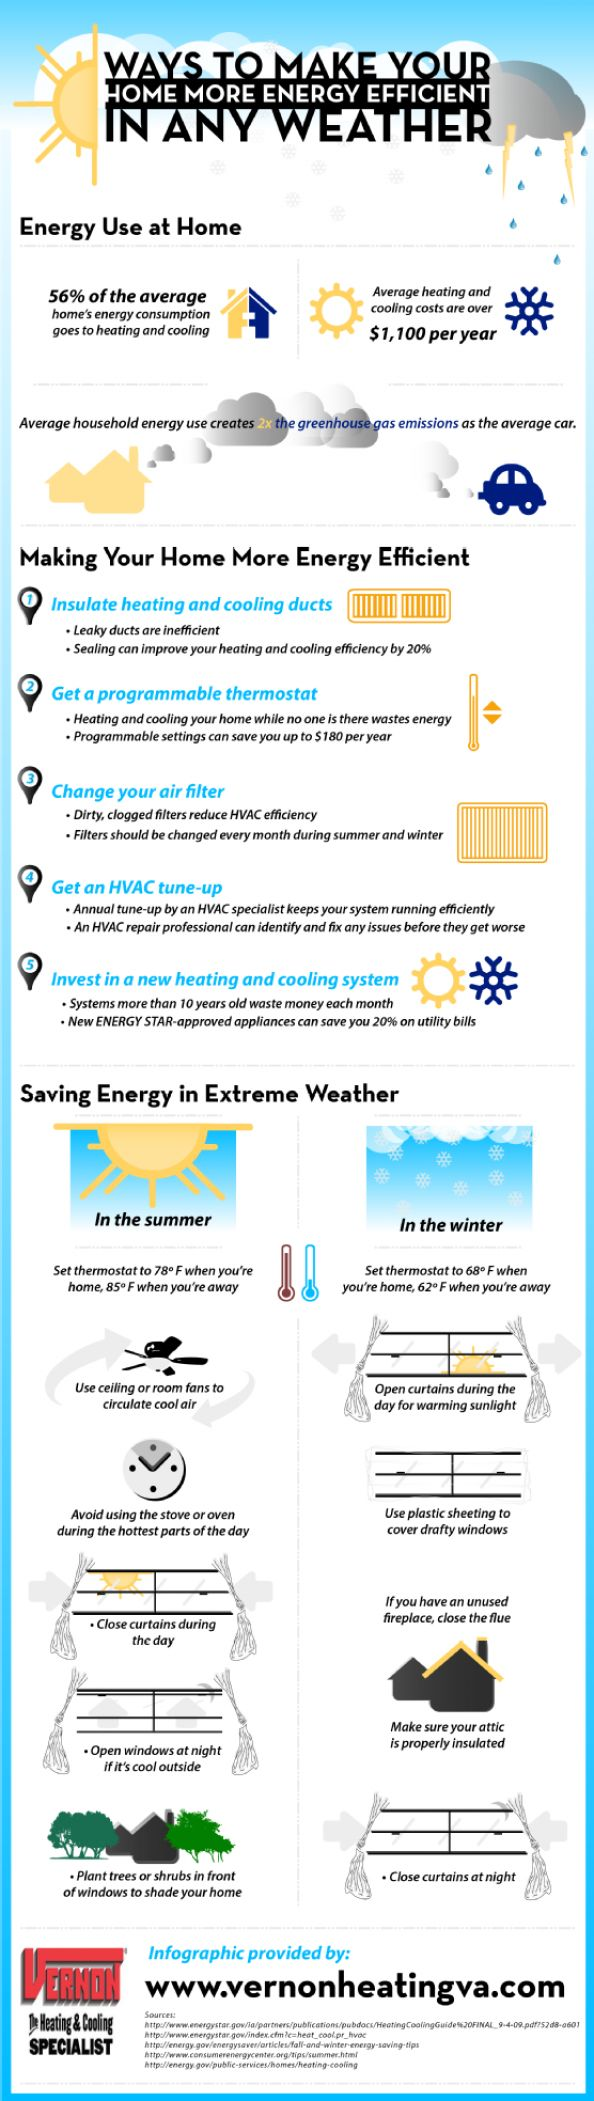 8 best Energy Tips images on Pinterest | Tips, Energy efficiency and ...